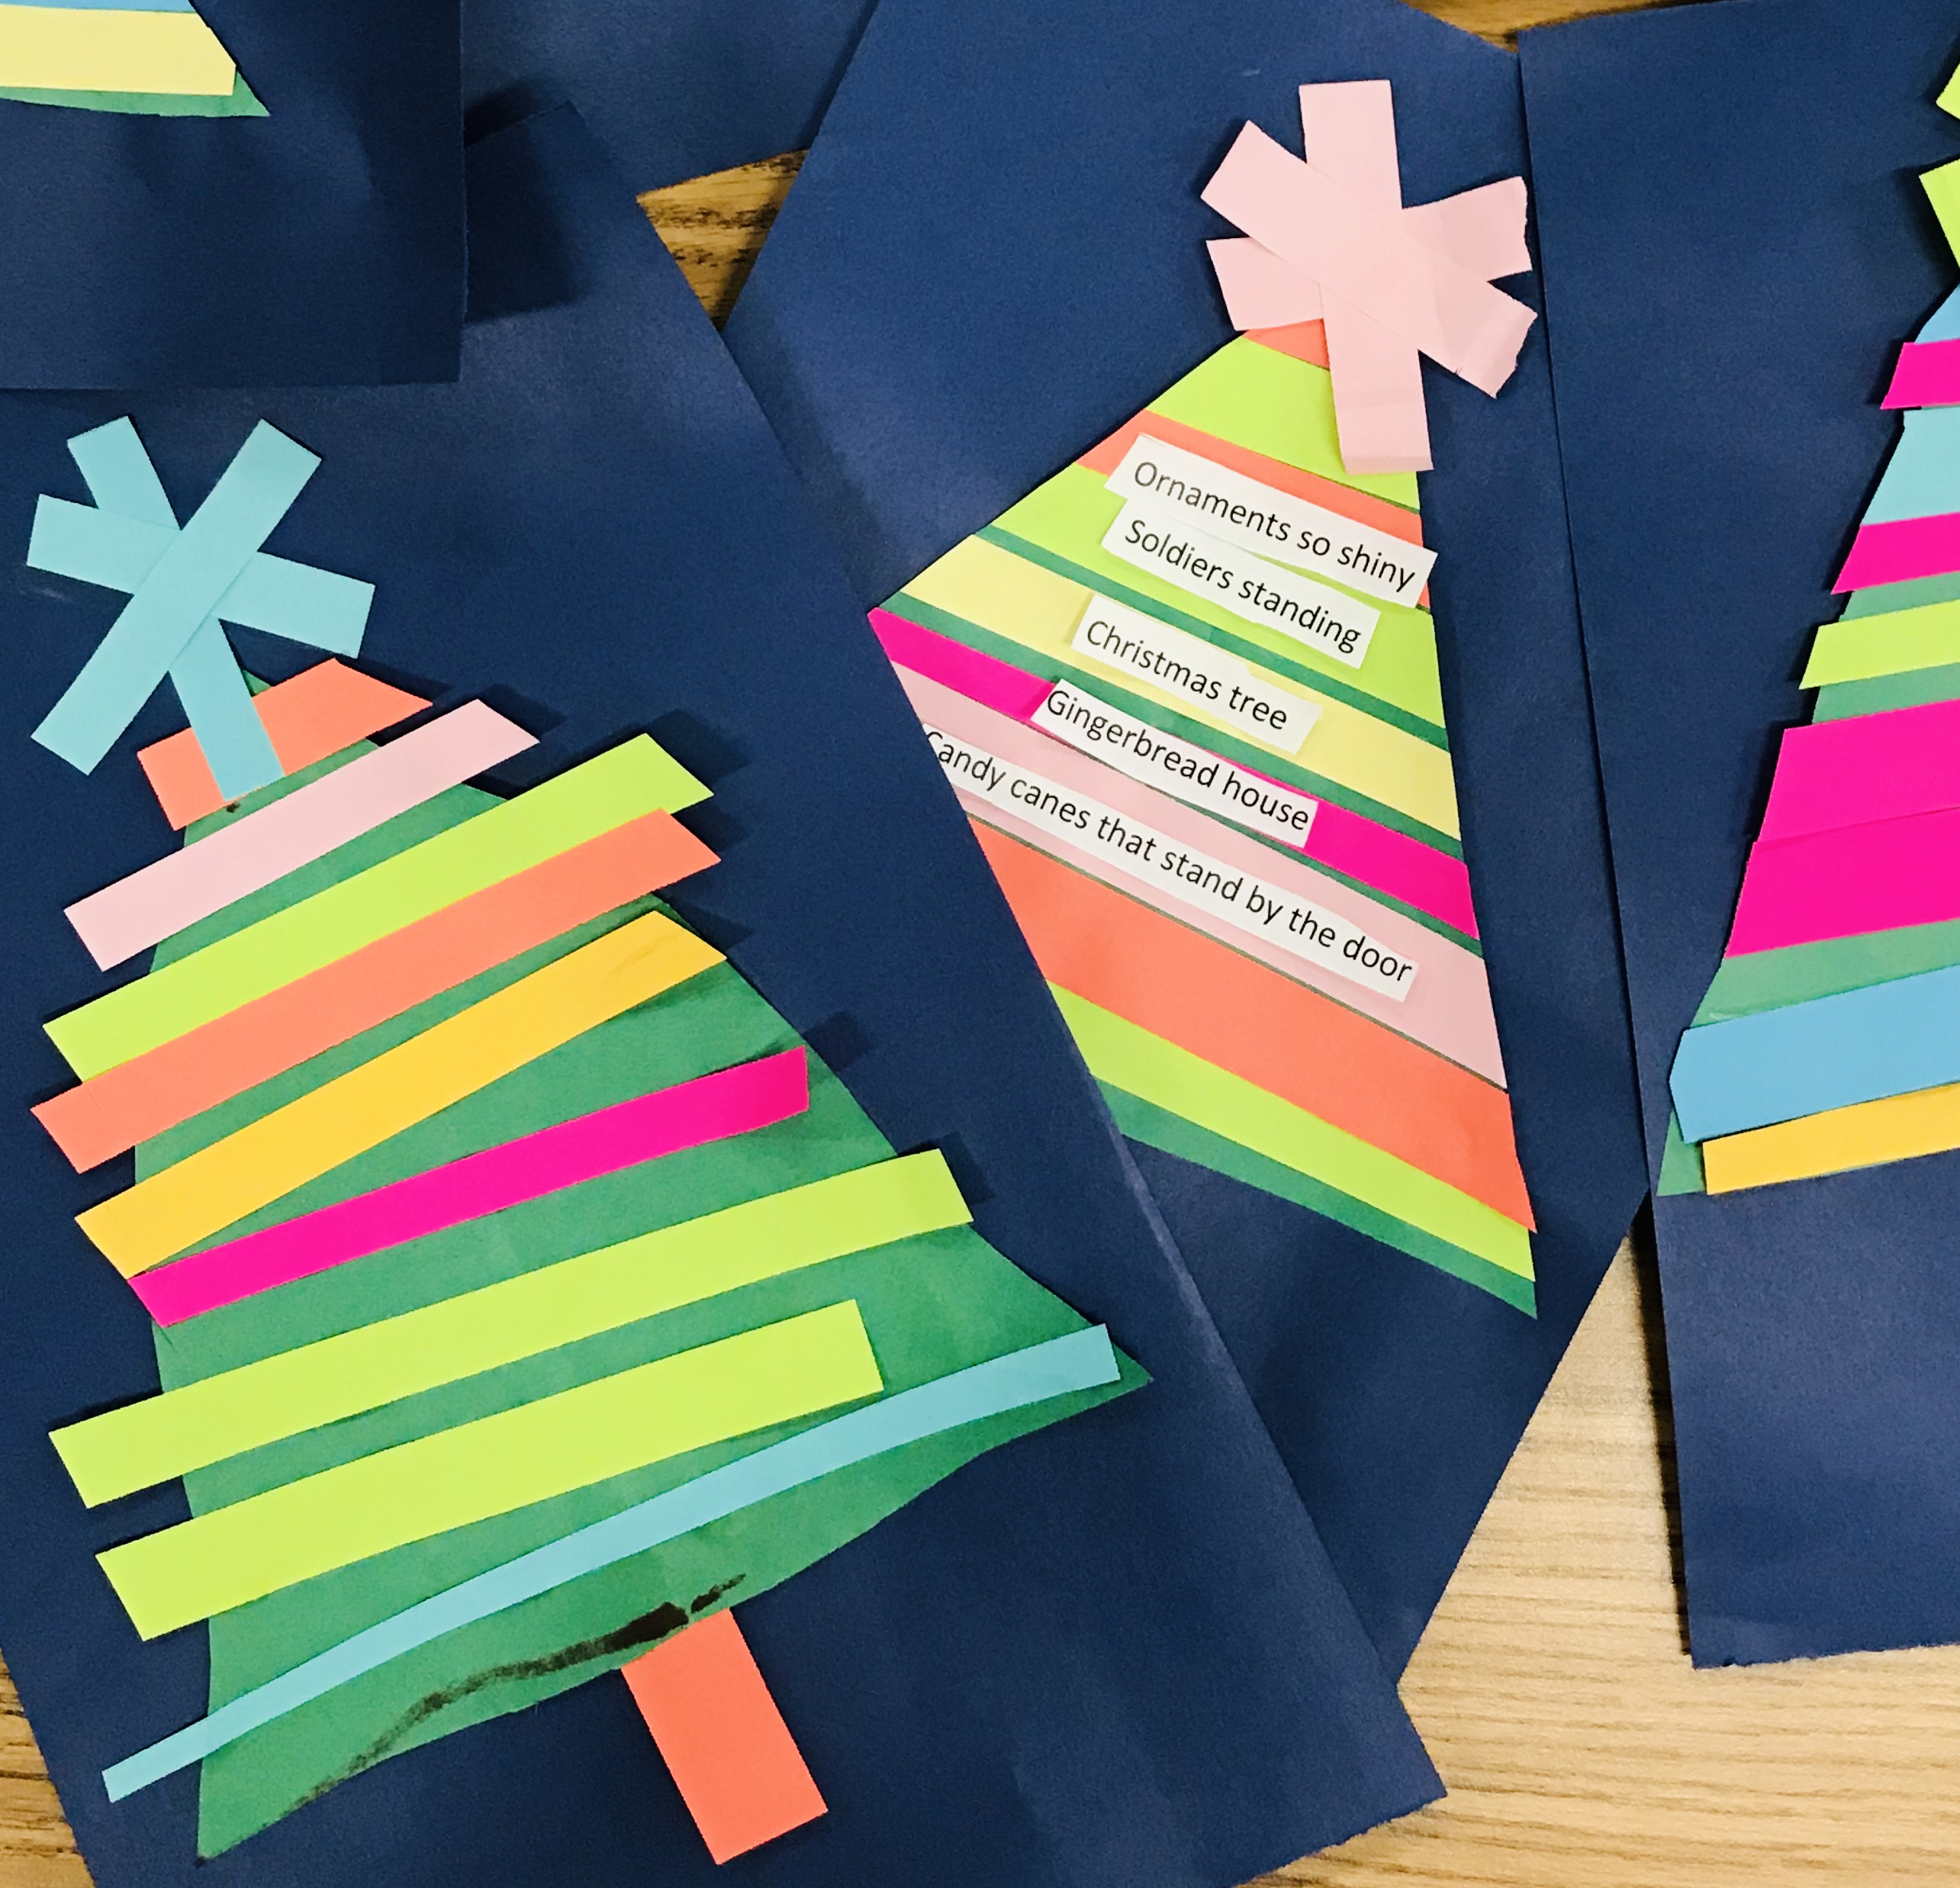 Completed paper strip Christmas tree